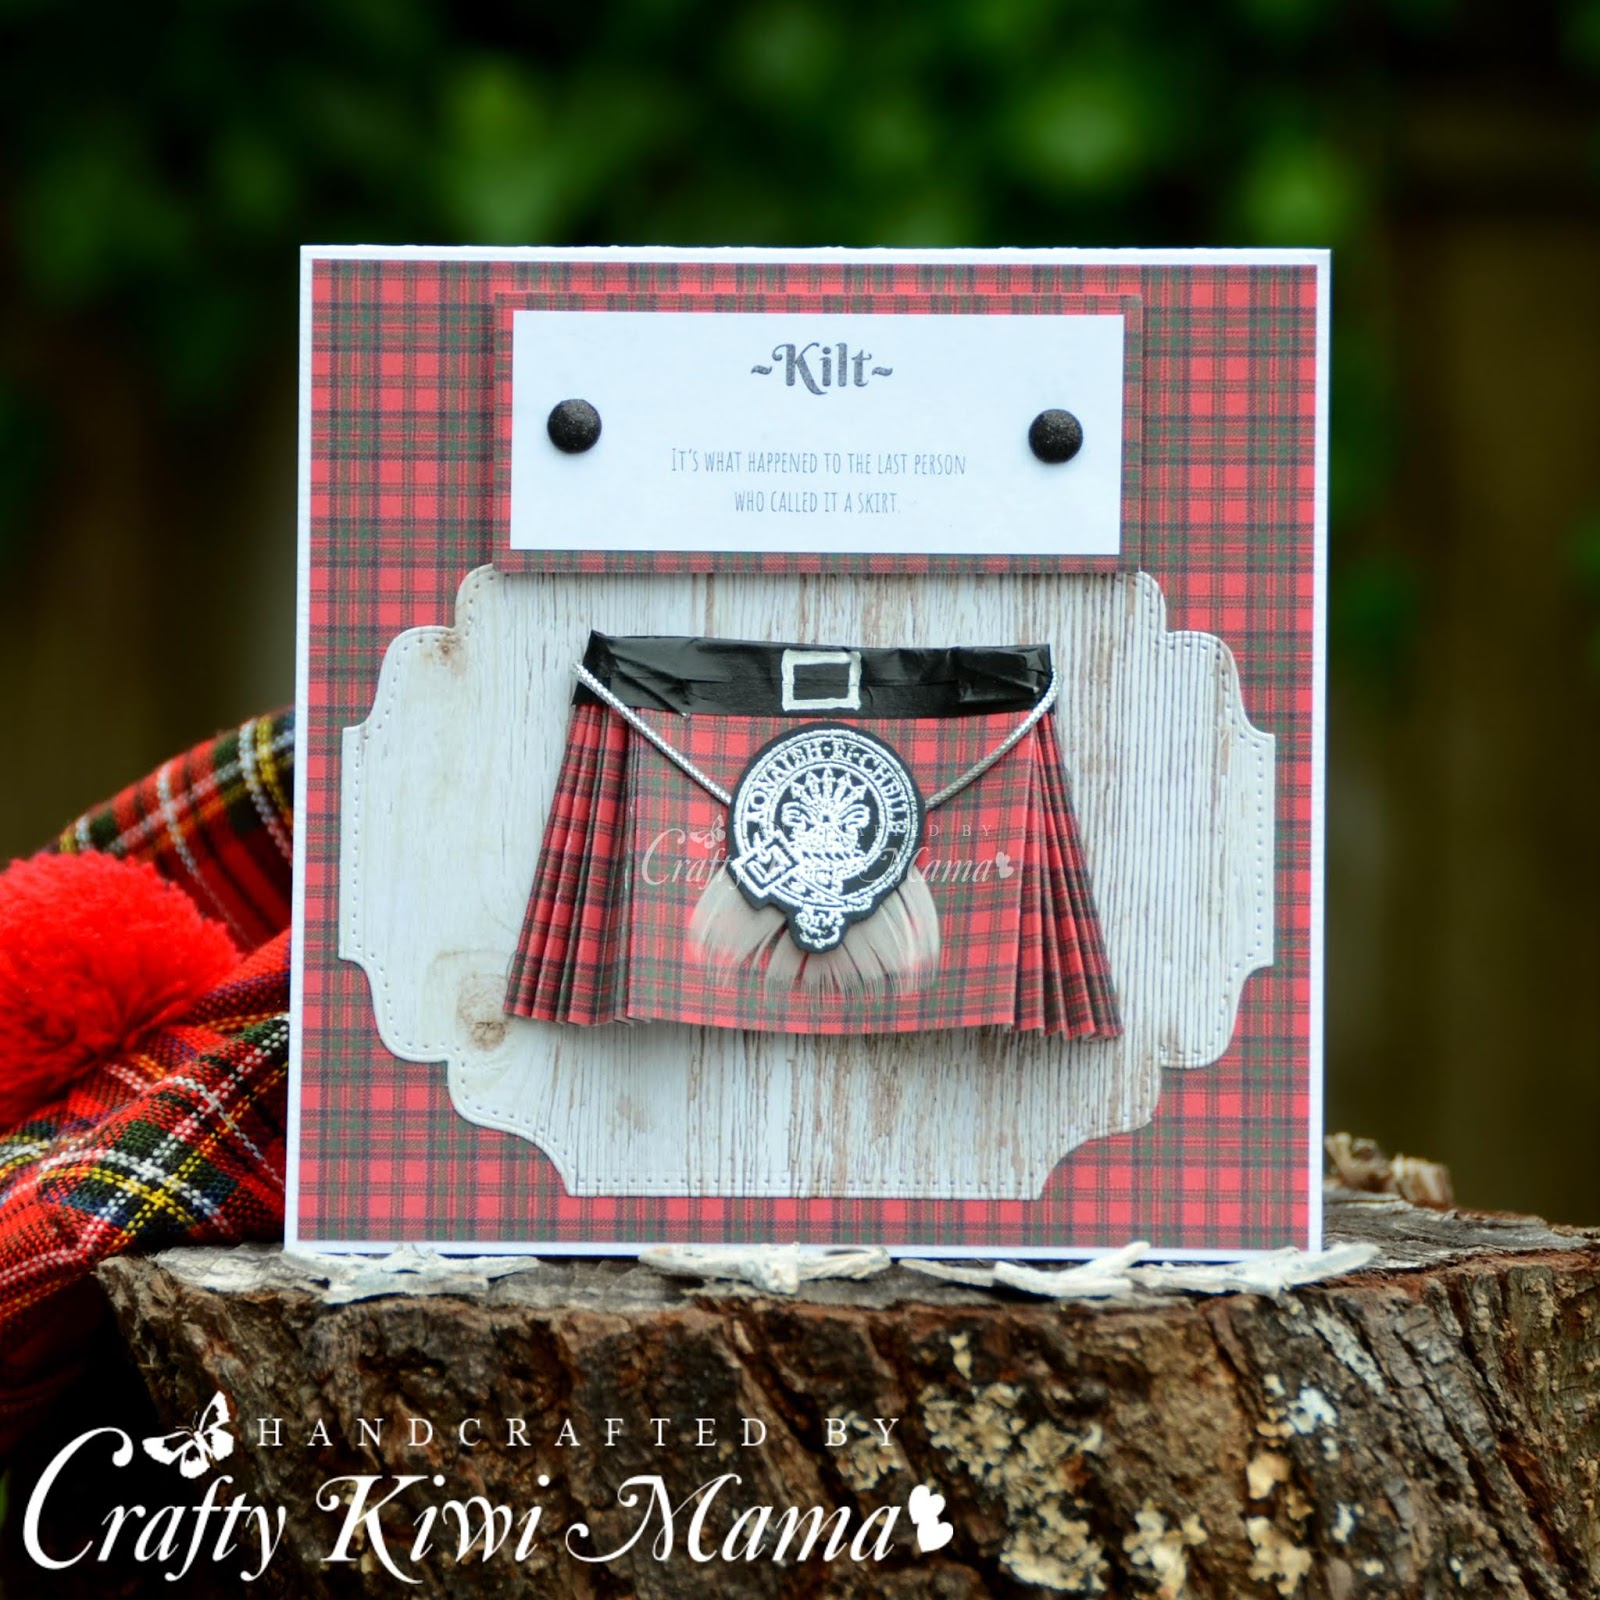 dffbe95ac6 I'd seen this done in a few cards on Pinterest, the folded tartan paper to create  the kilt. So I just winged it and guessed ...